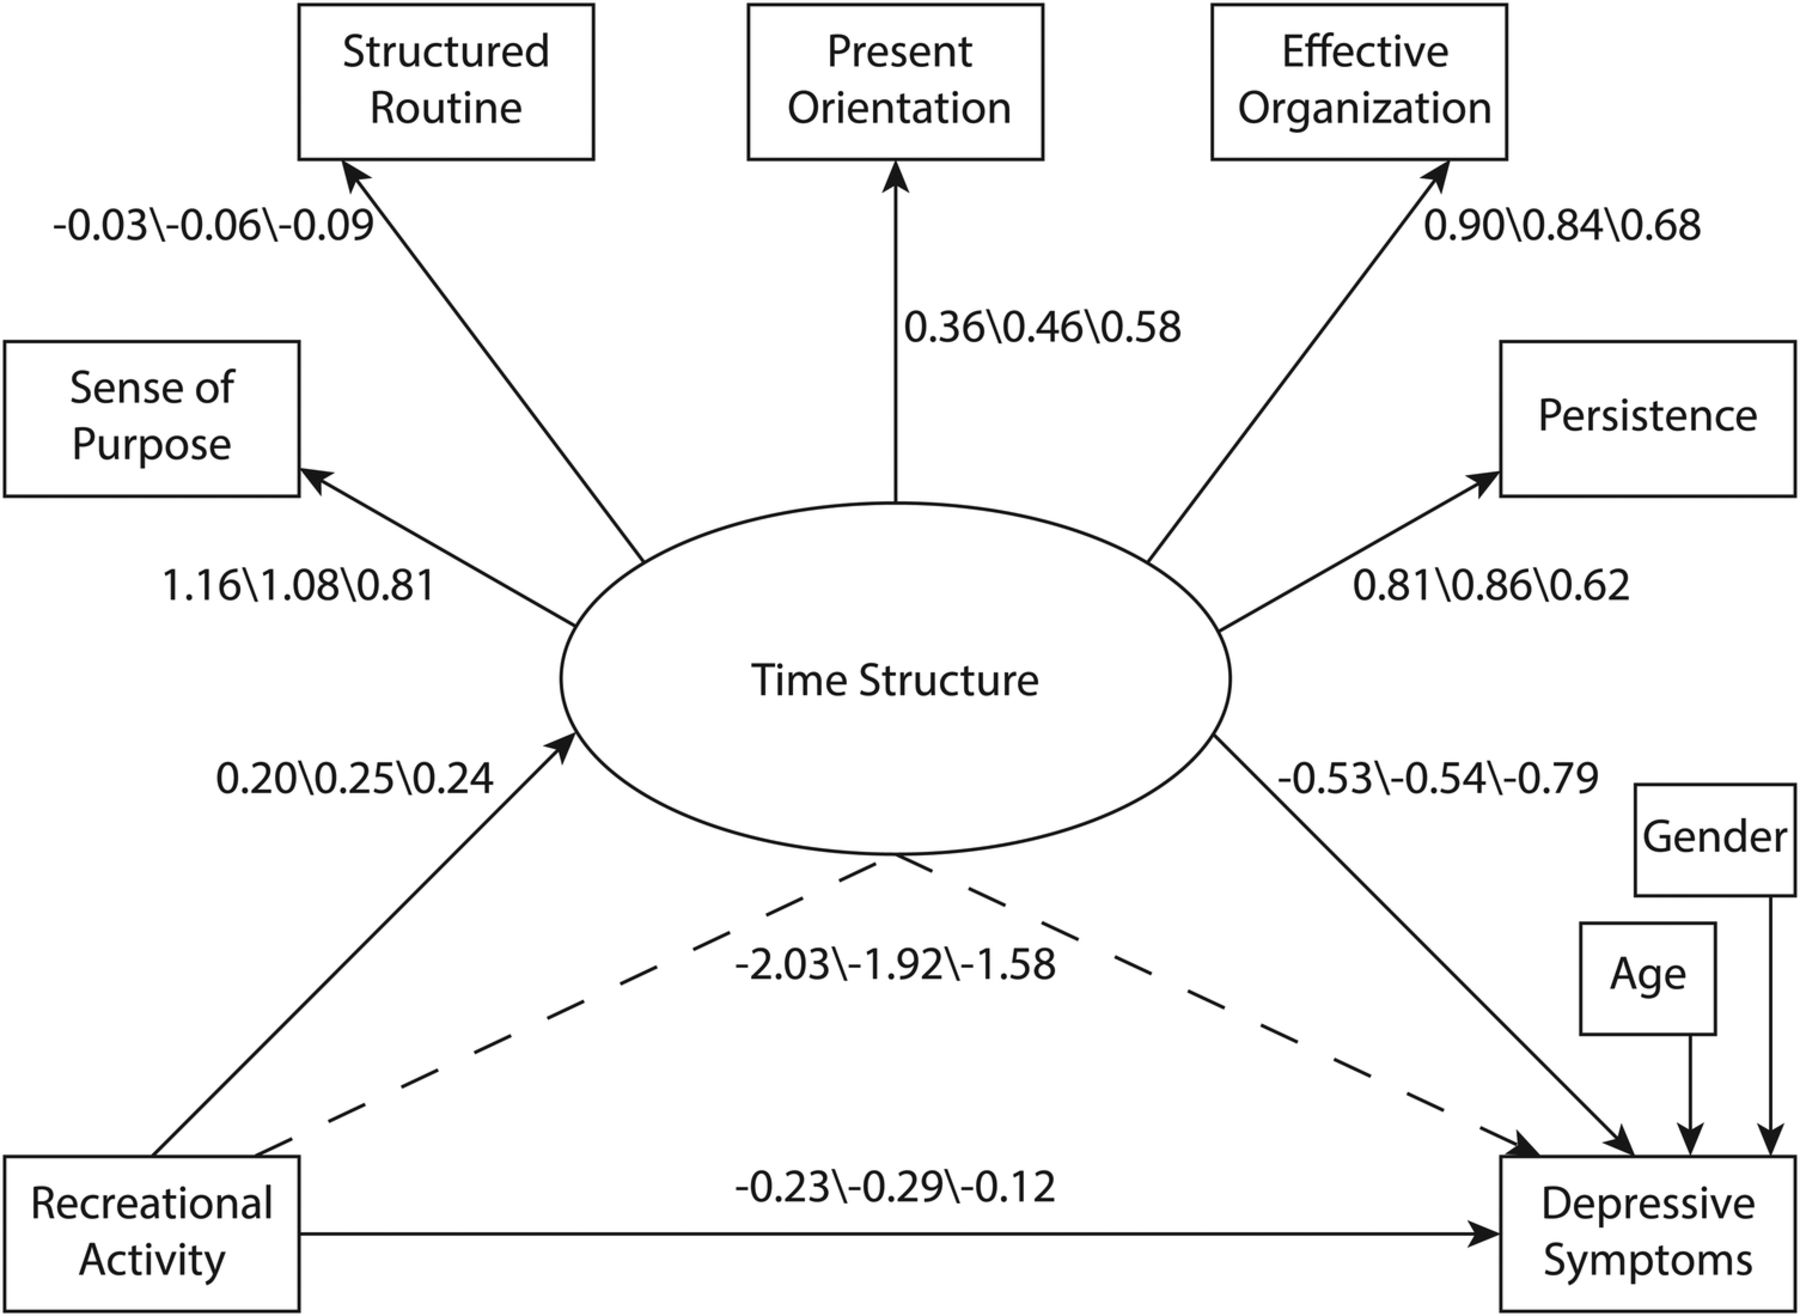 Leisure Activities Are Linked To Mental Health Benefits By Providing Time Structure Comparing